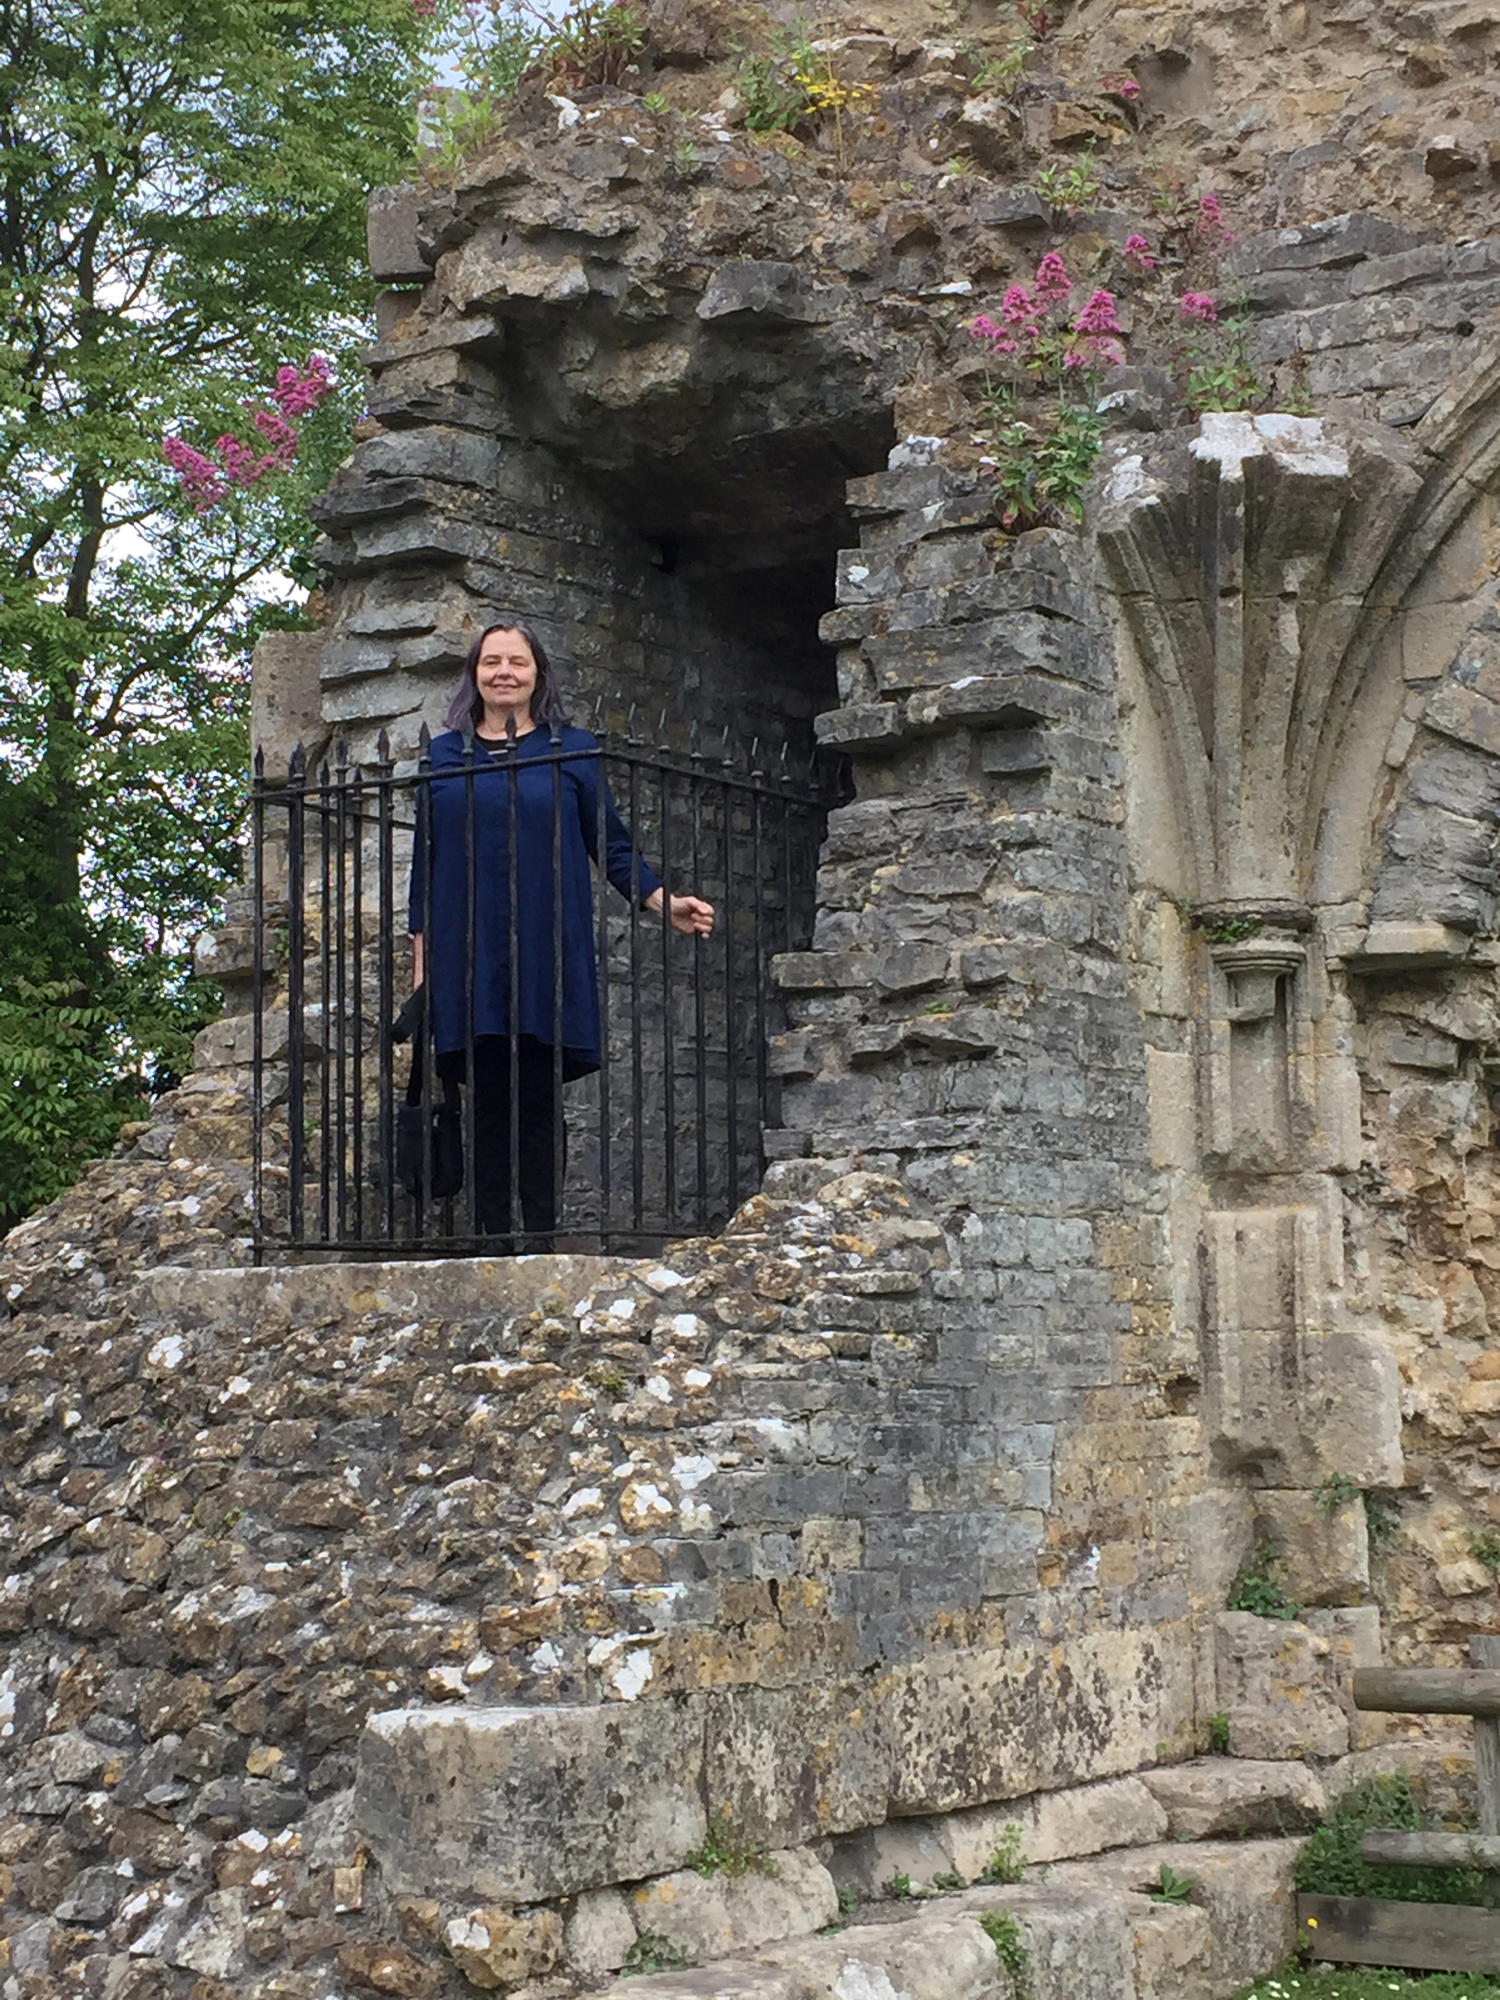 Meet field school co-leader Elizabeth, seen here in the remains of the southwest corner of the Abbot's Great Hall at the Glastonbury Abbey